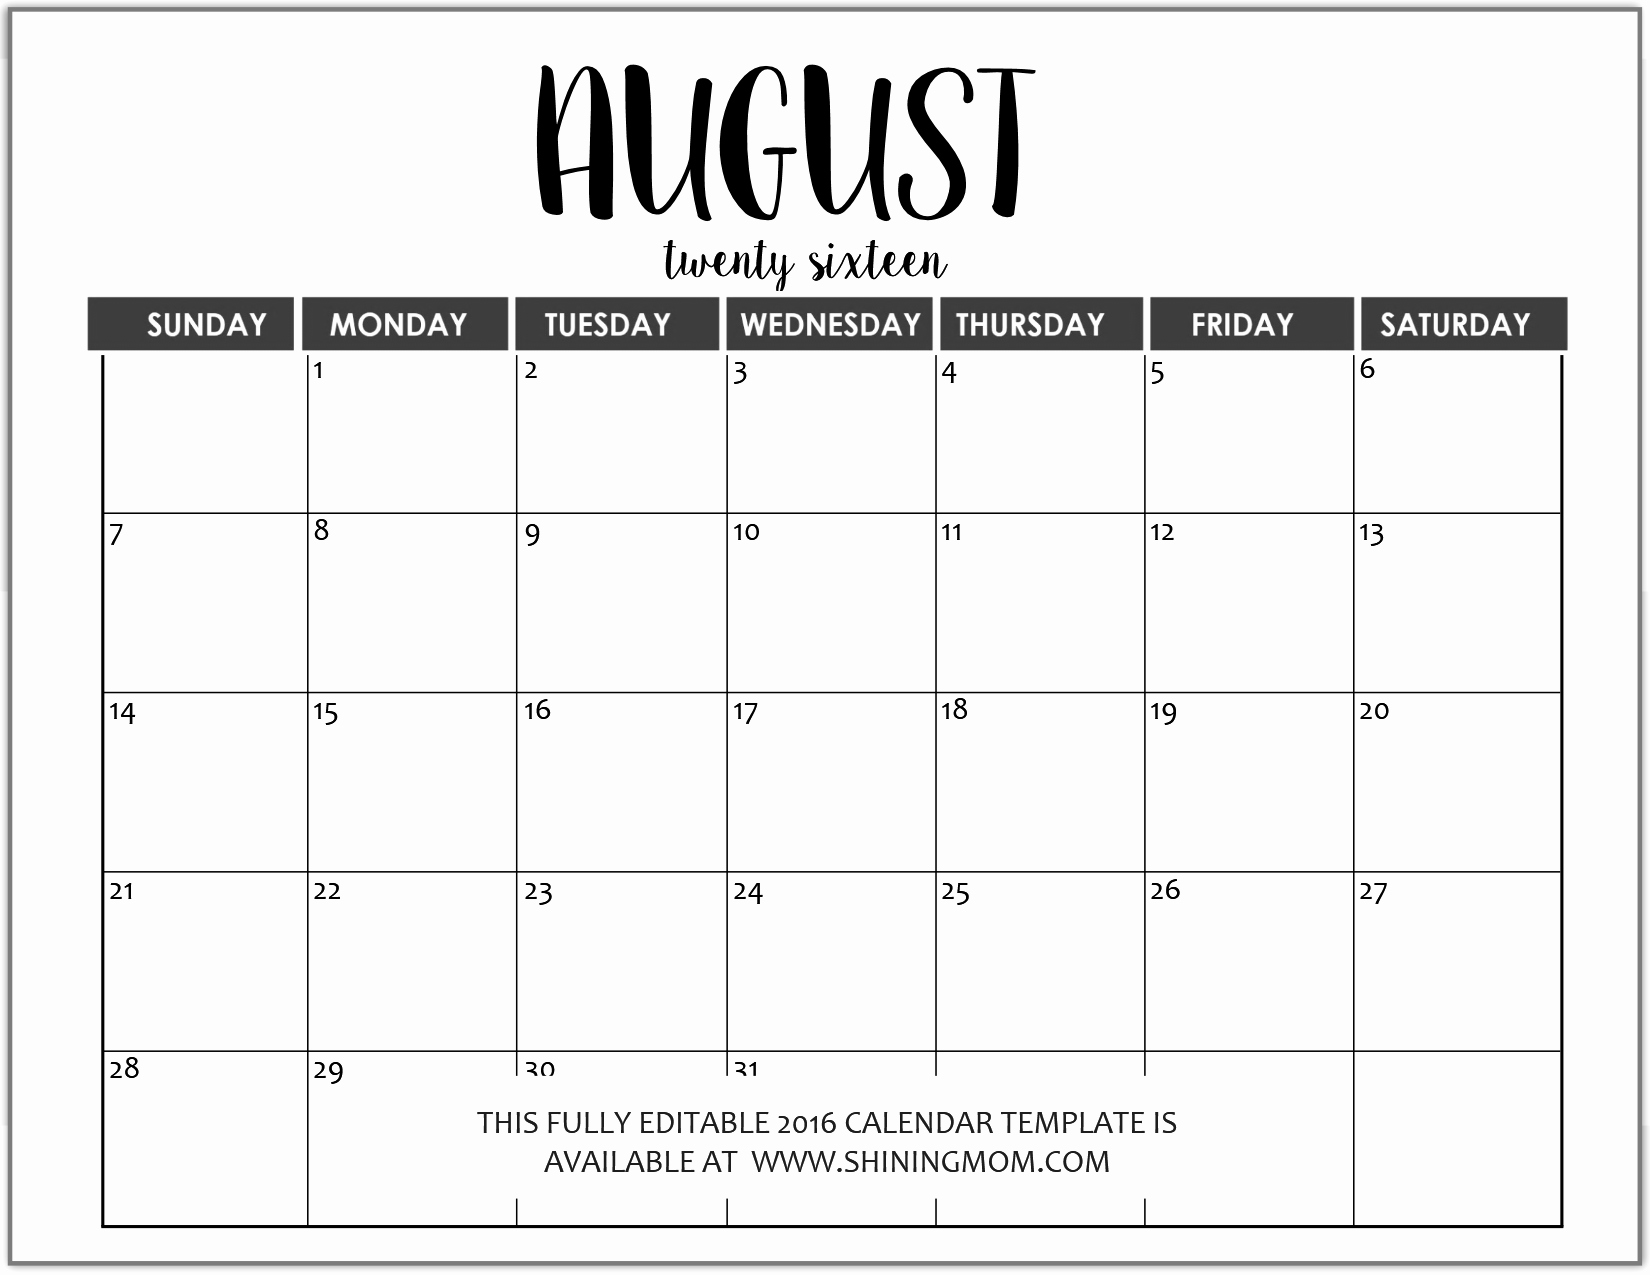 Calendar Templates for Ms Word Lovely Just In Fully Editable 2016 Calendar Templates In Ms Word